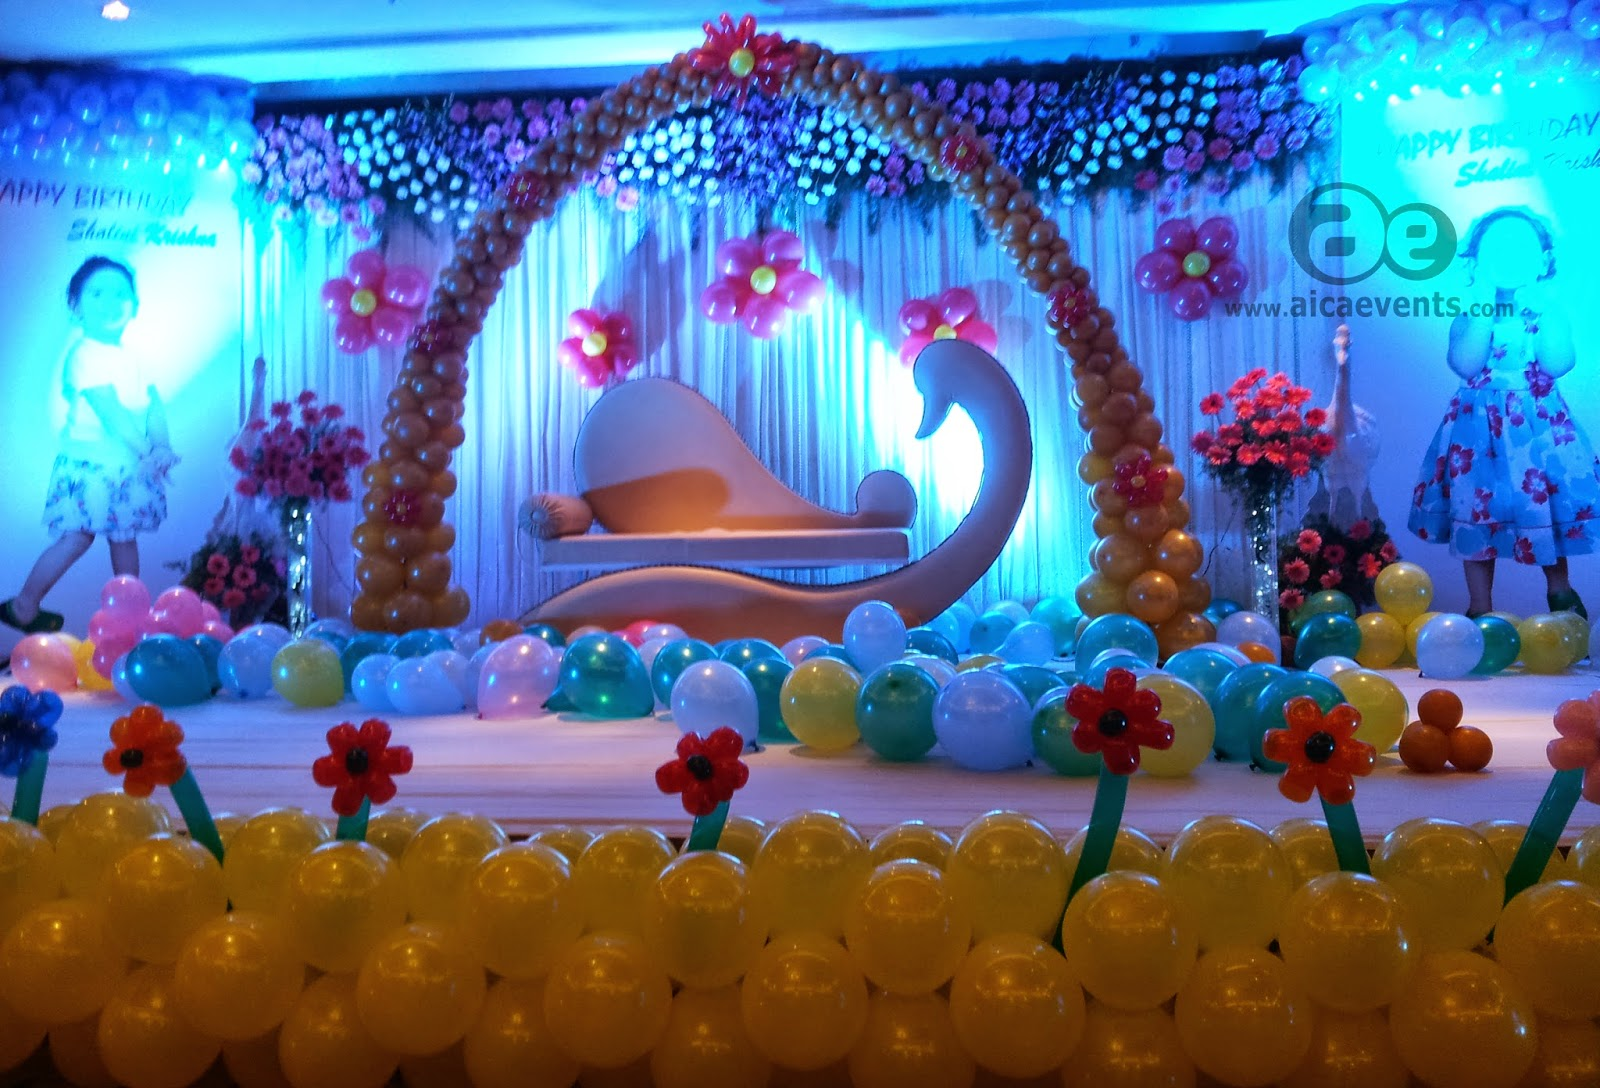 aicaevents Balloon Decorations for Birthday parties